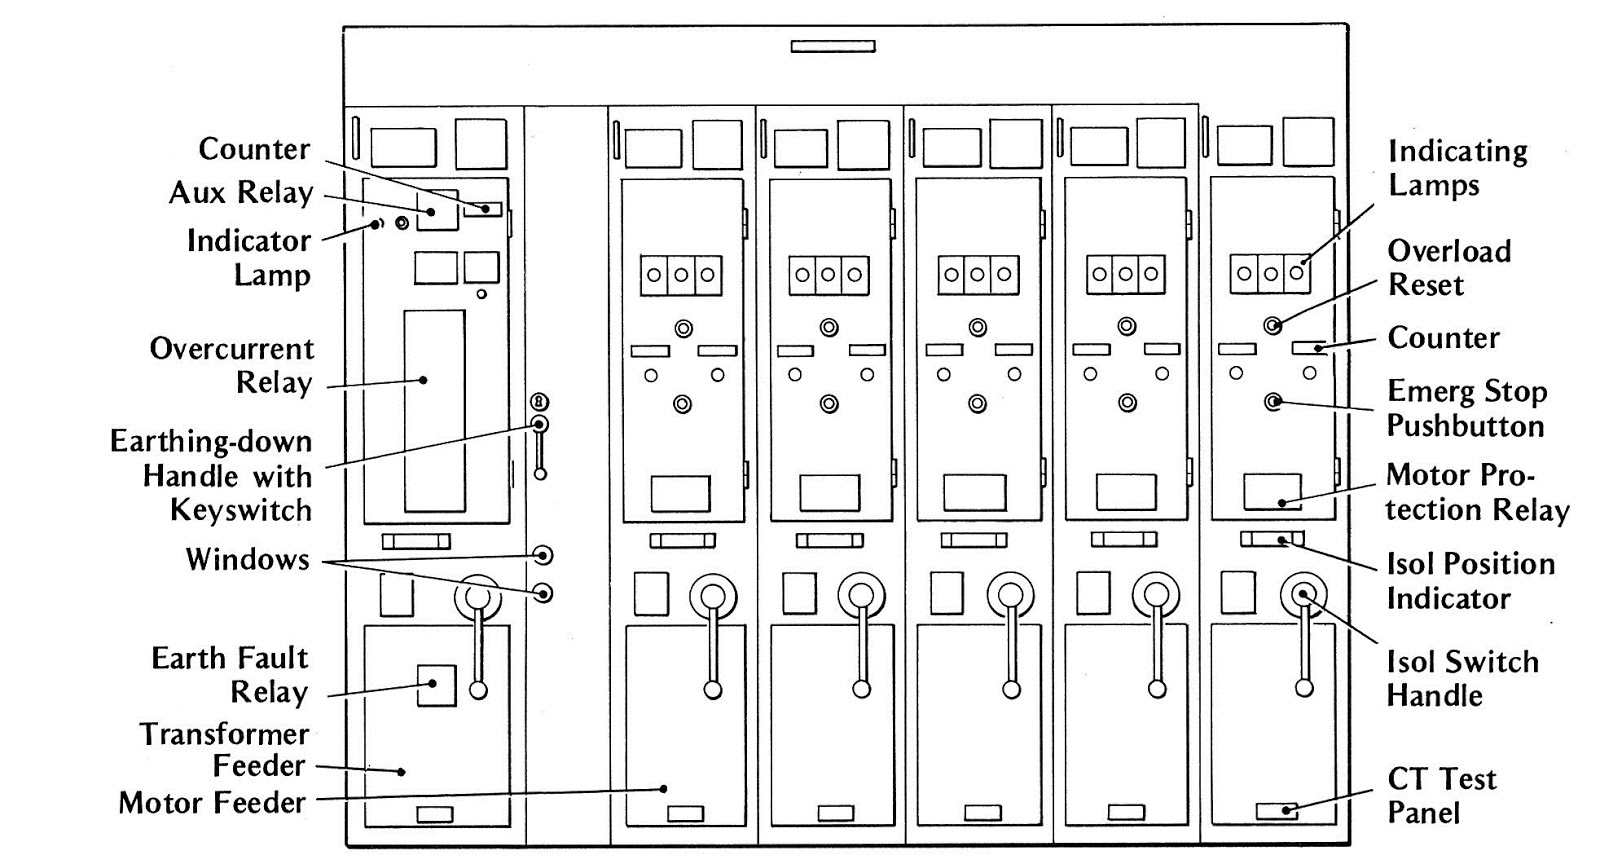 ge 8000 mcc wiring diagram Download-Image Gallery switchgear diagram 14-p